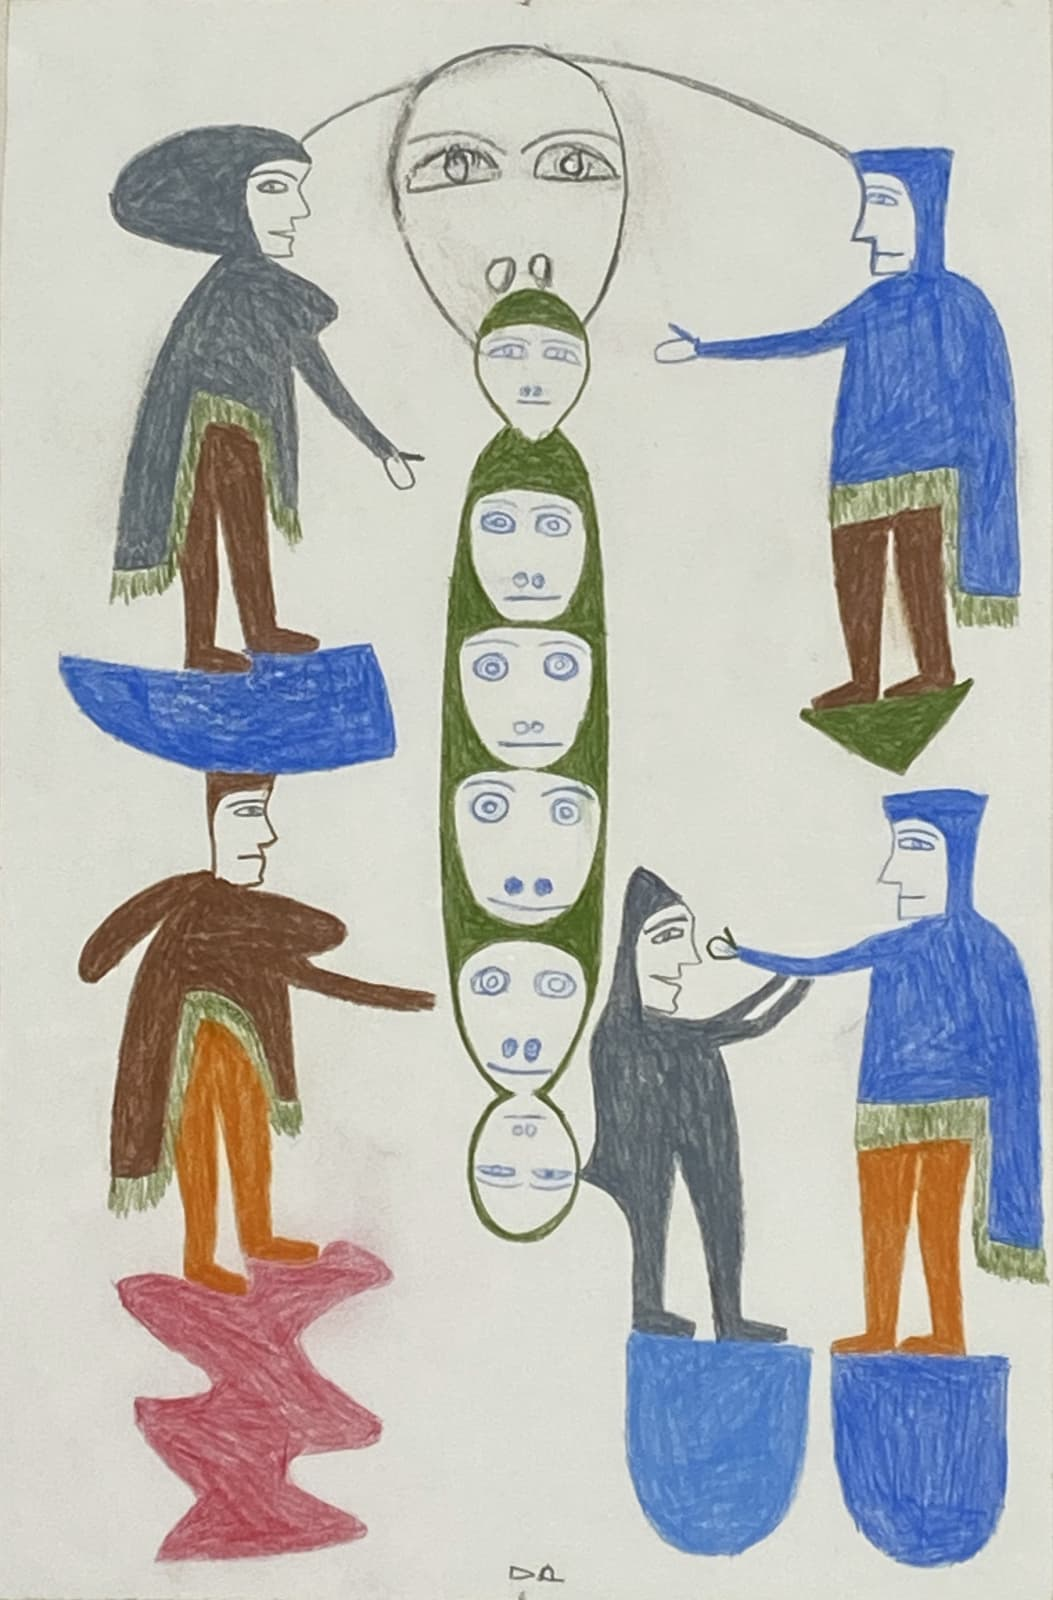 LOT 61 JESSIE OONARK, O.C., R.C.A (1906-1985) QAMANI'TUAQ (BAKER LAKE) Untitled (Composition with Faces and Balancing Figures), 1975 coloured pencil on paper, 14 1/2 x 9 3/4 in (36.8 x 24.8 cm) framed. ESTIMATE $2,000 — $3,000